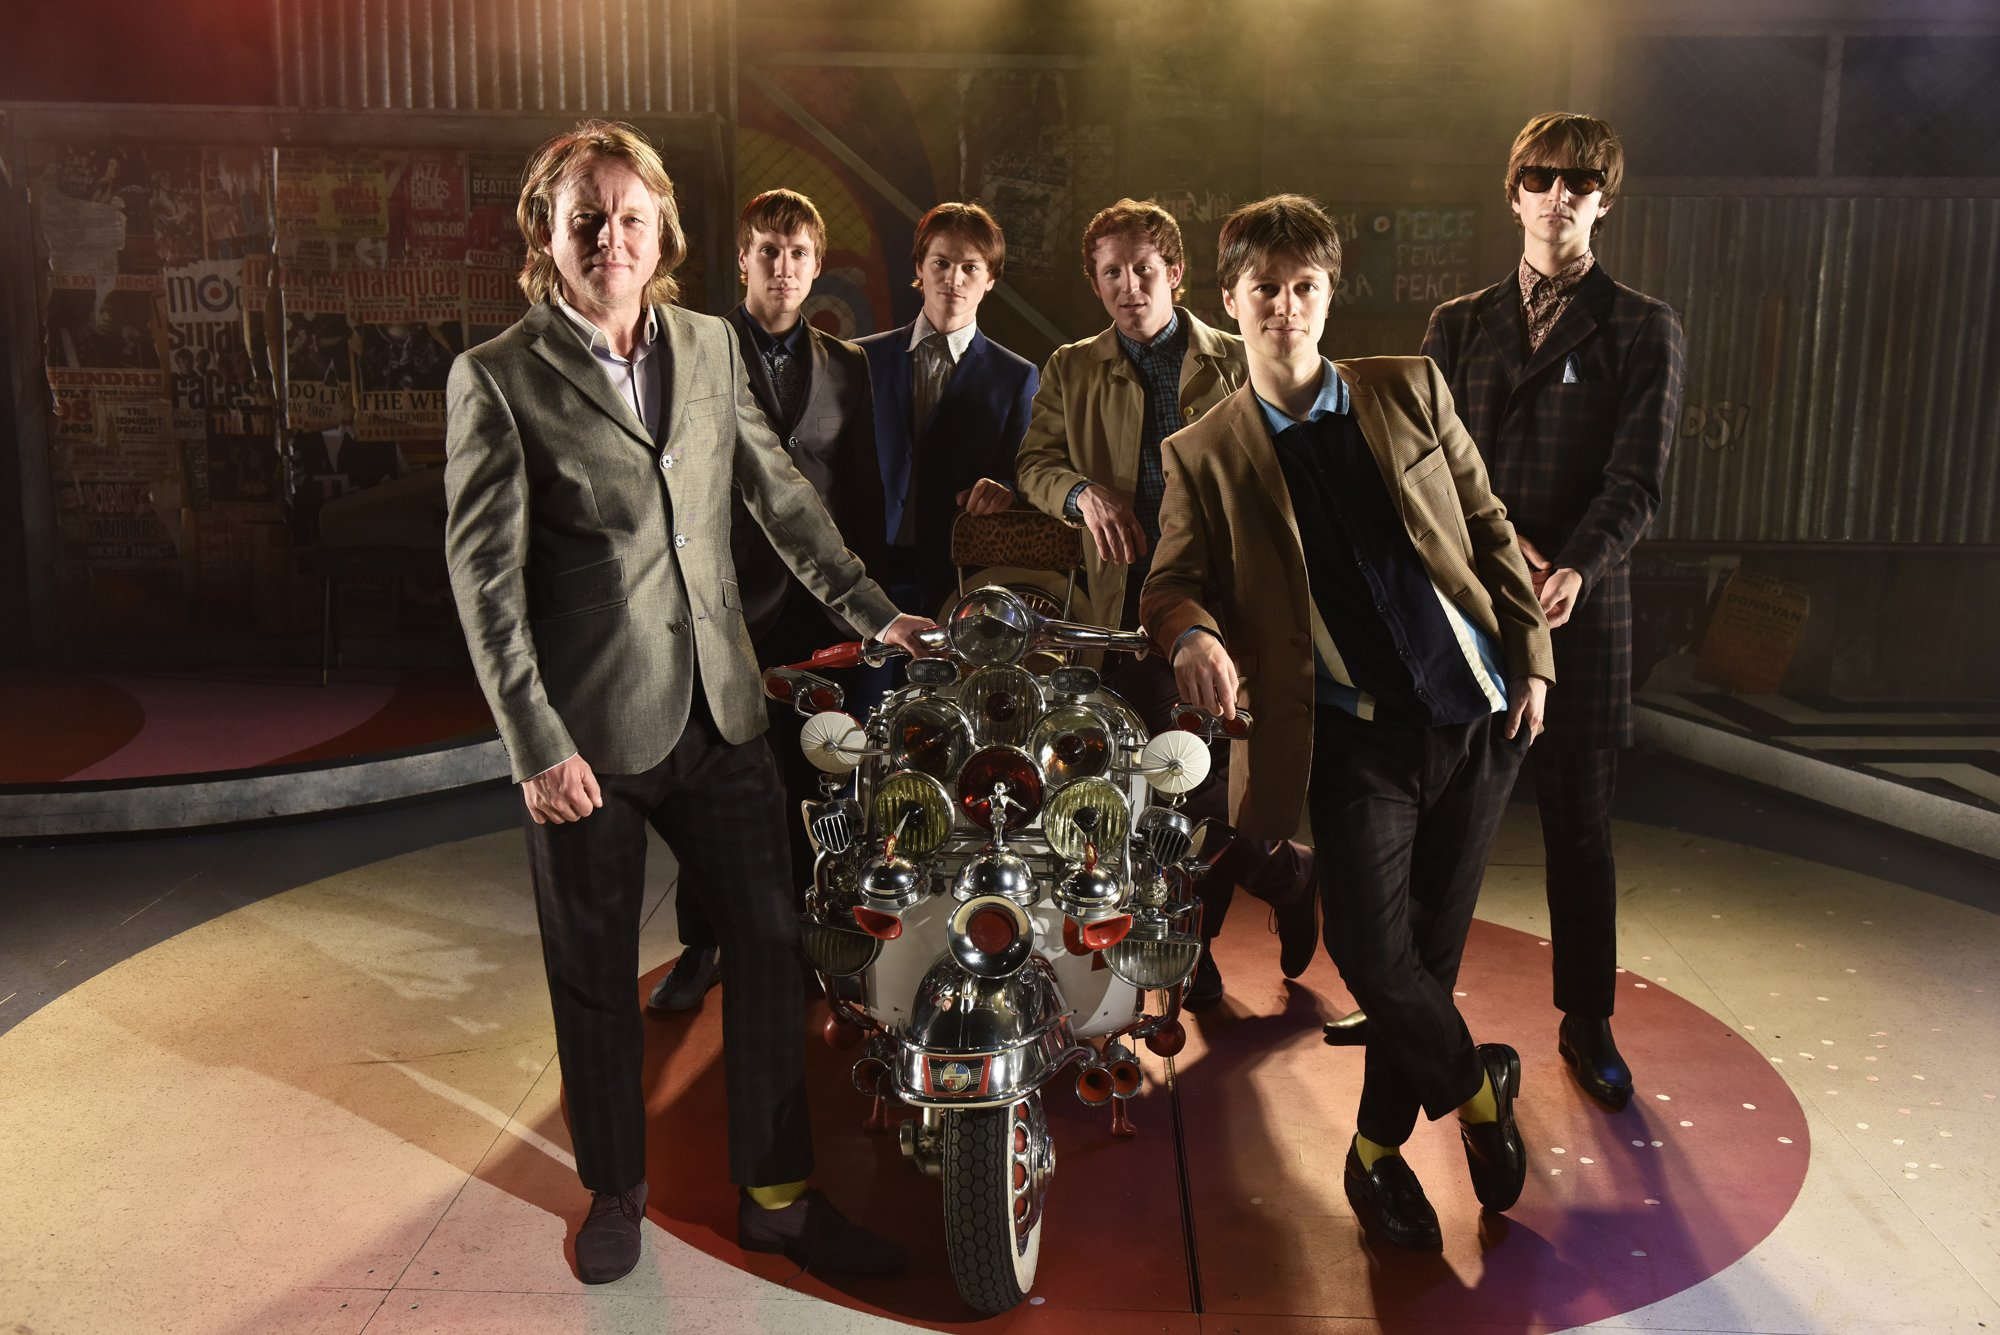 RT @SardinesMag: Review: 'All or Nothing' - @AONthemusical at @thevaultsuk https://t.co/1I8fphY81t via @SardinesMag https://t.co/Emu9EbTX5E